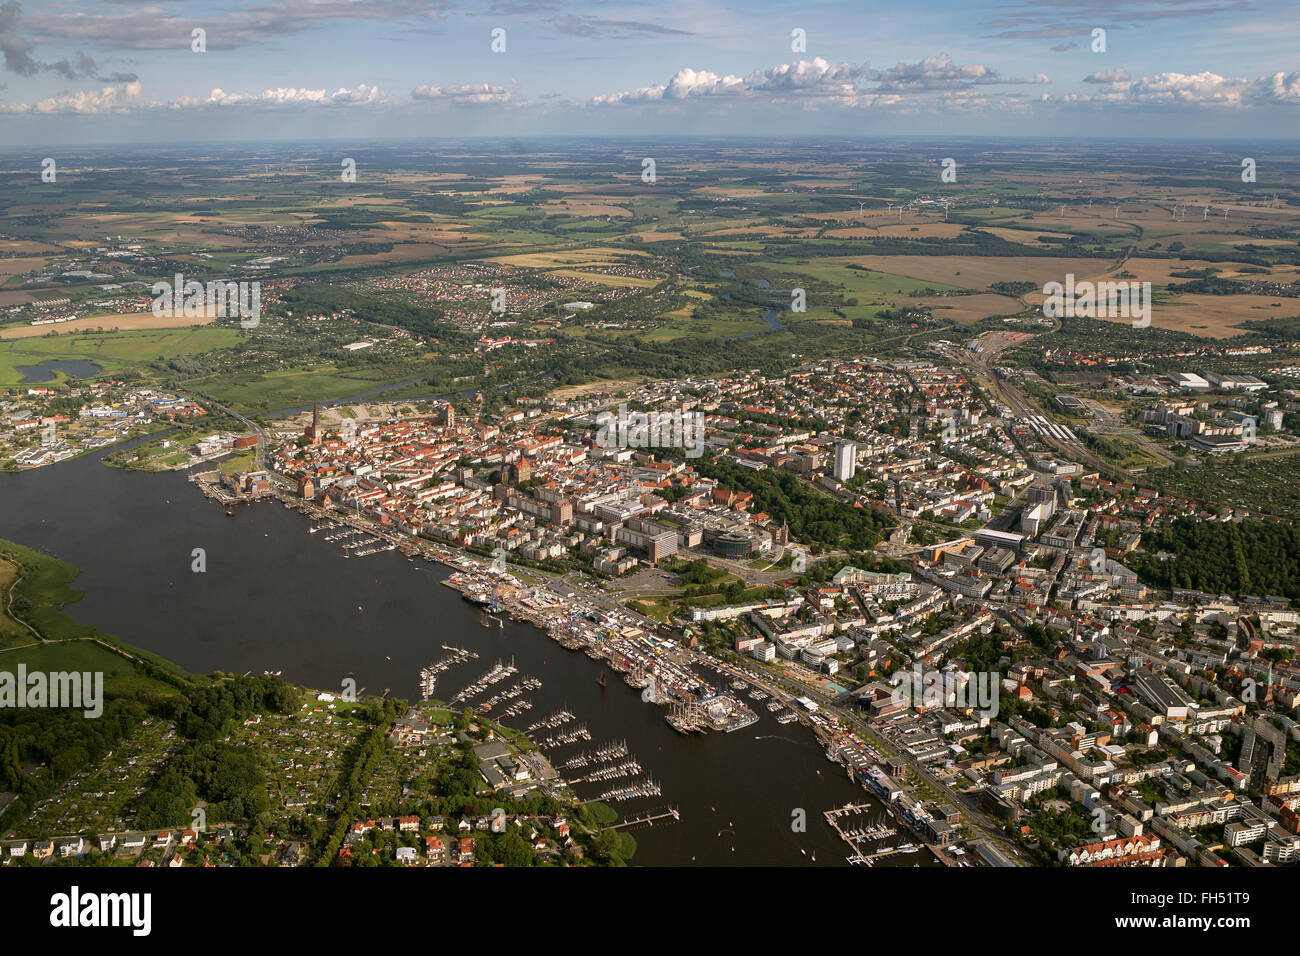 Aerial view, Rostock Hanse Sail, Rostock, Baltic Sea, Baltic Sea, Mecklenburg-Vorpommern, Germany, Europe, Aerial - Stock Image